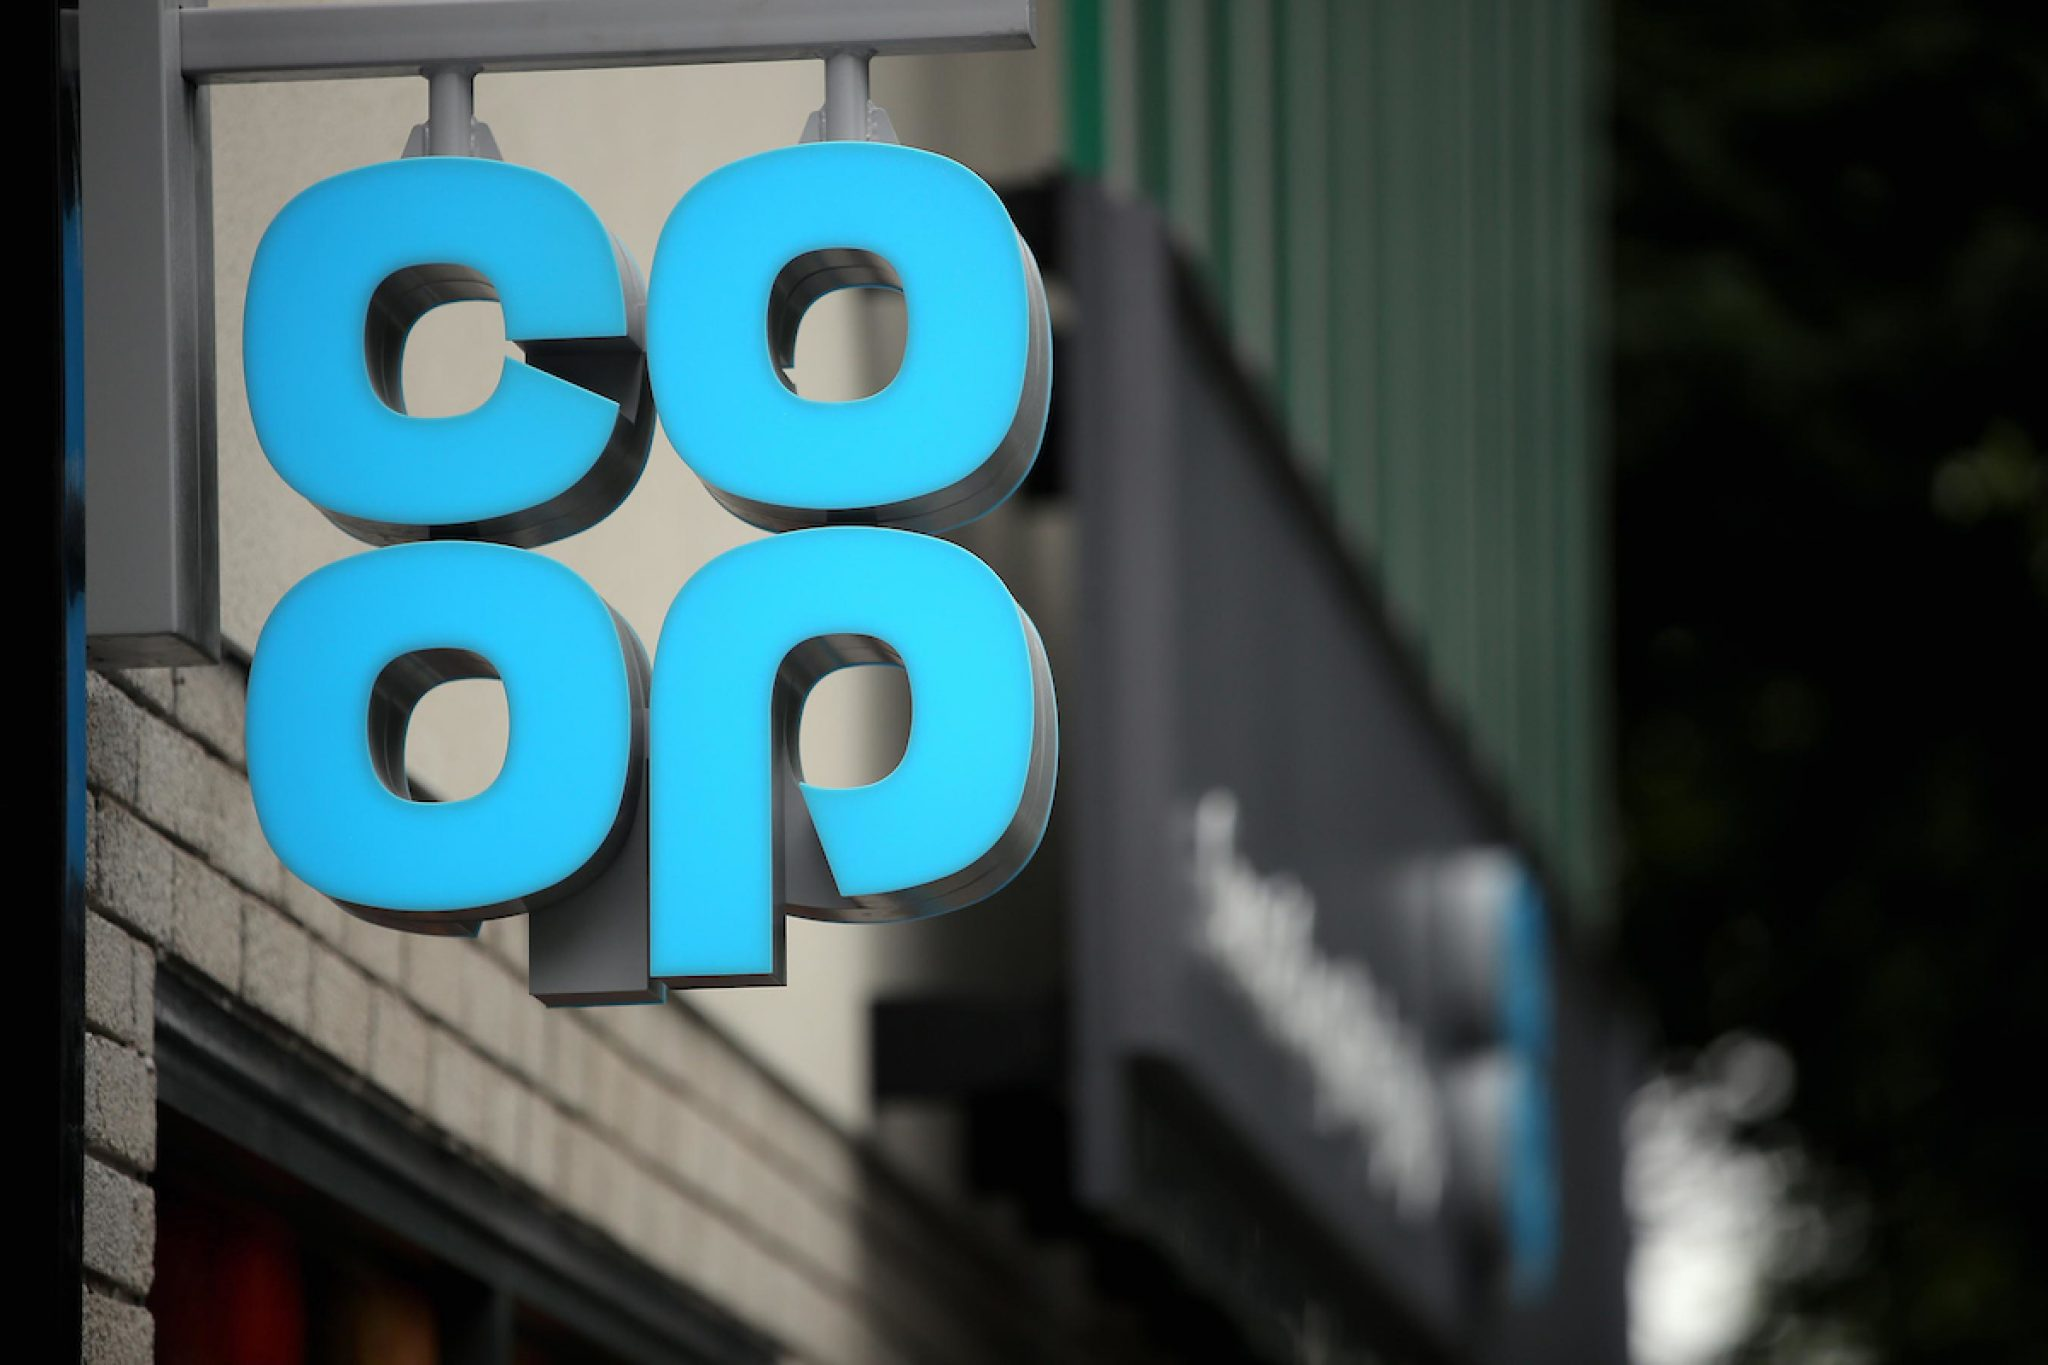 Co-op launches in-store scheme for difficult-to-recycle plastics